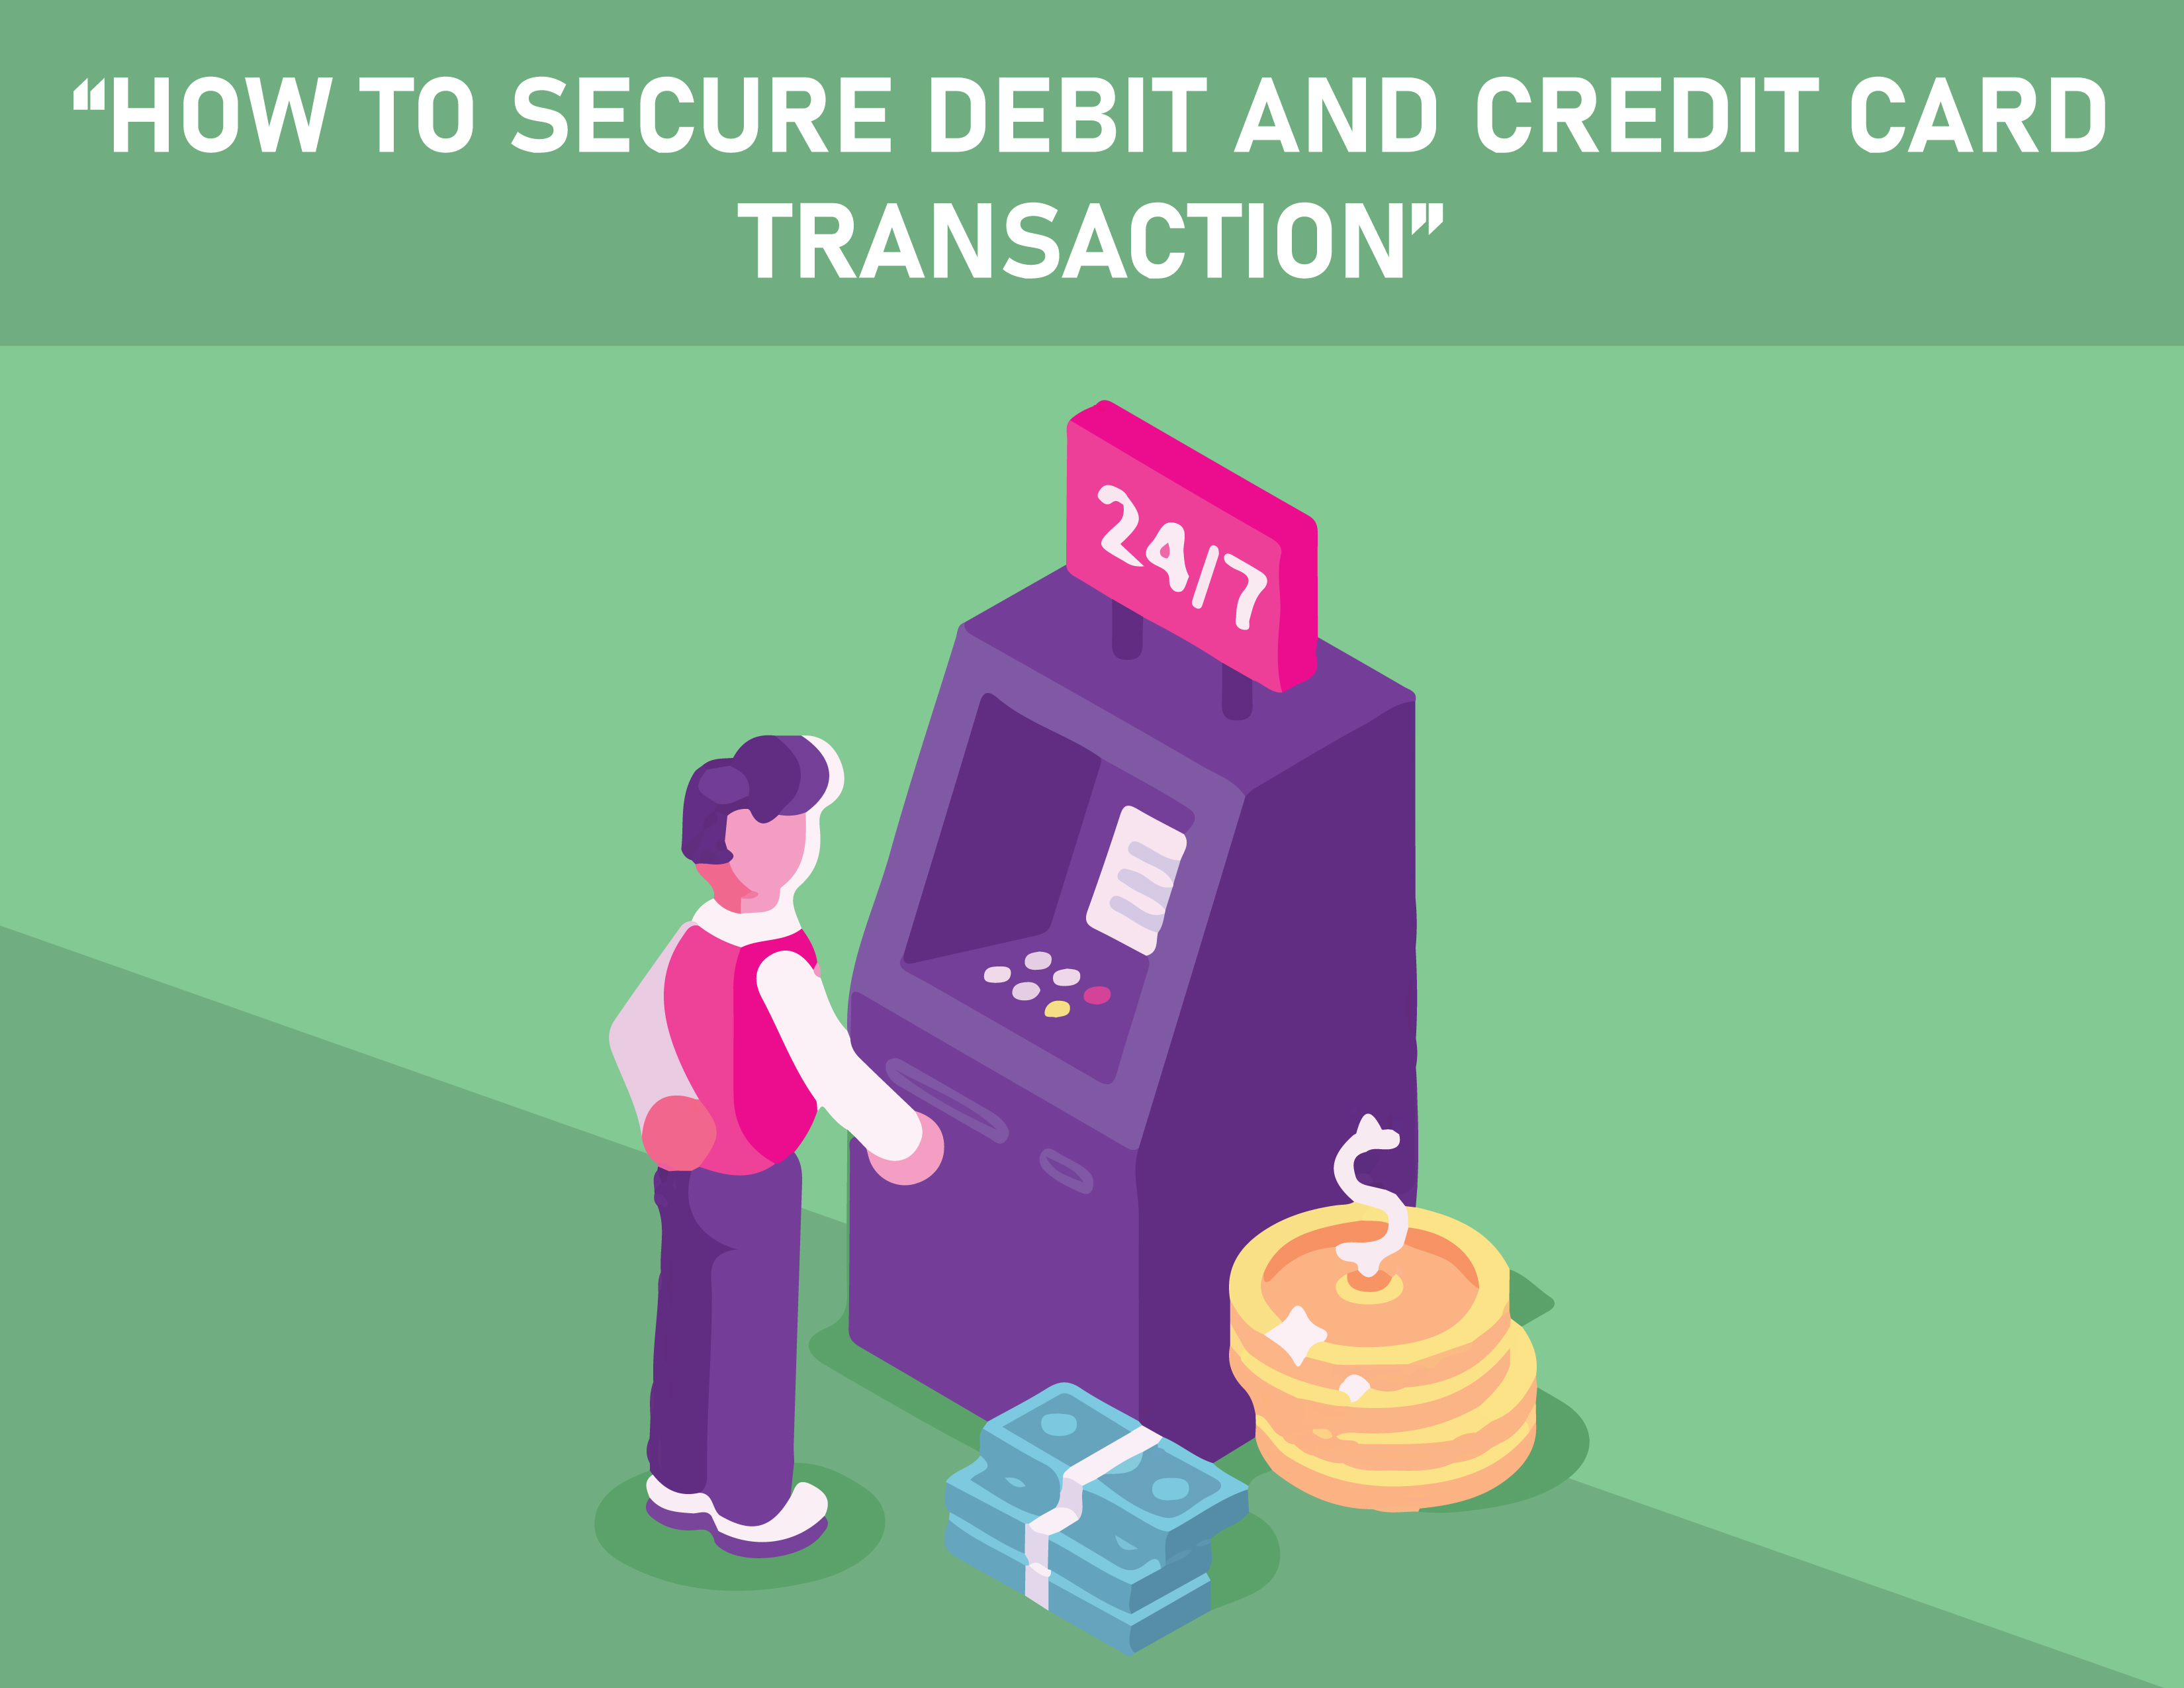 How to Secure Debit and Credit Card Transactions